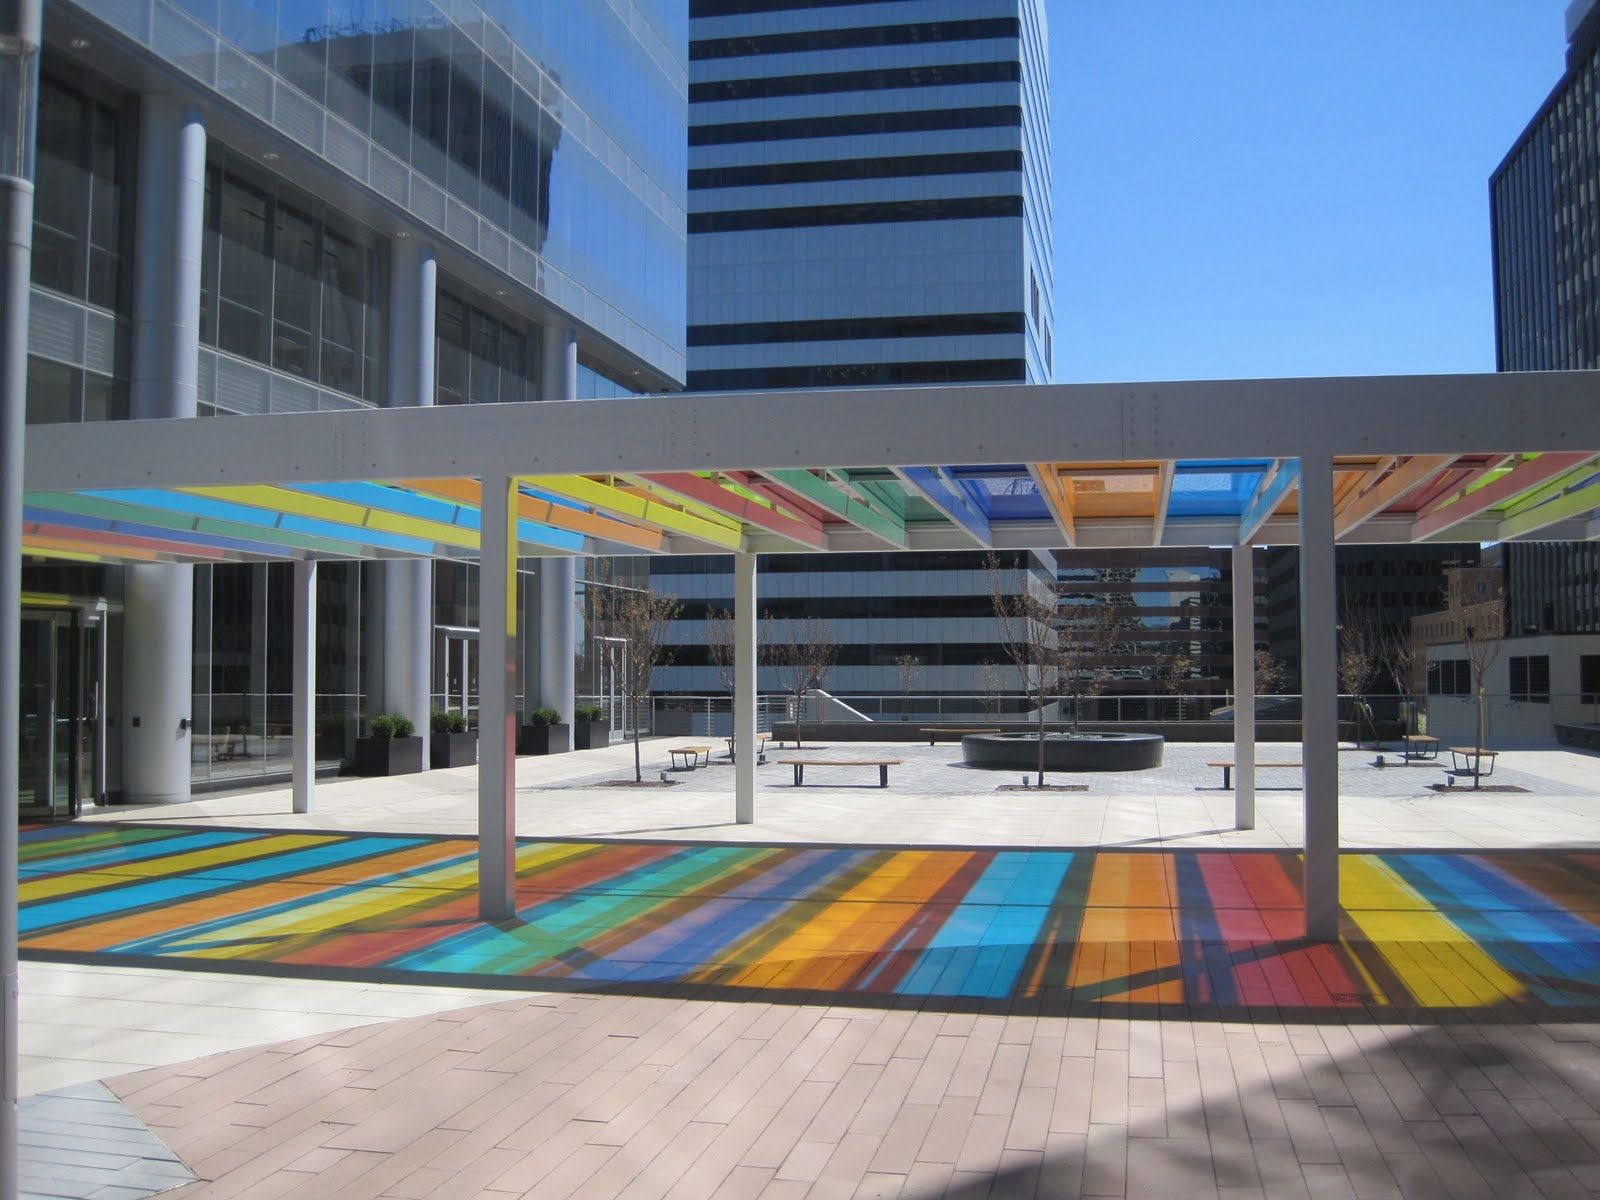 Color art st louis mo - Prettiest Piece Of Public Art In St Louis This Canopy By Liam Gillick At Centene S New Headquarters